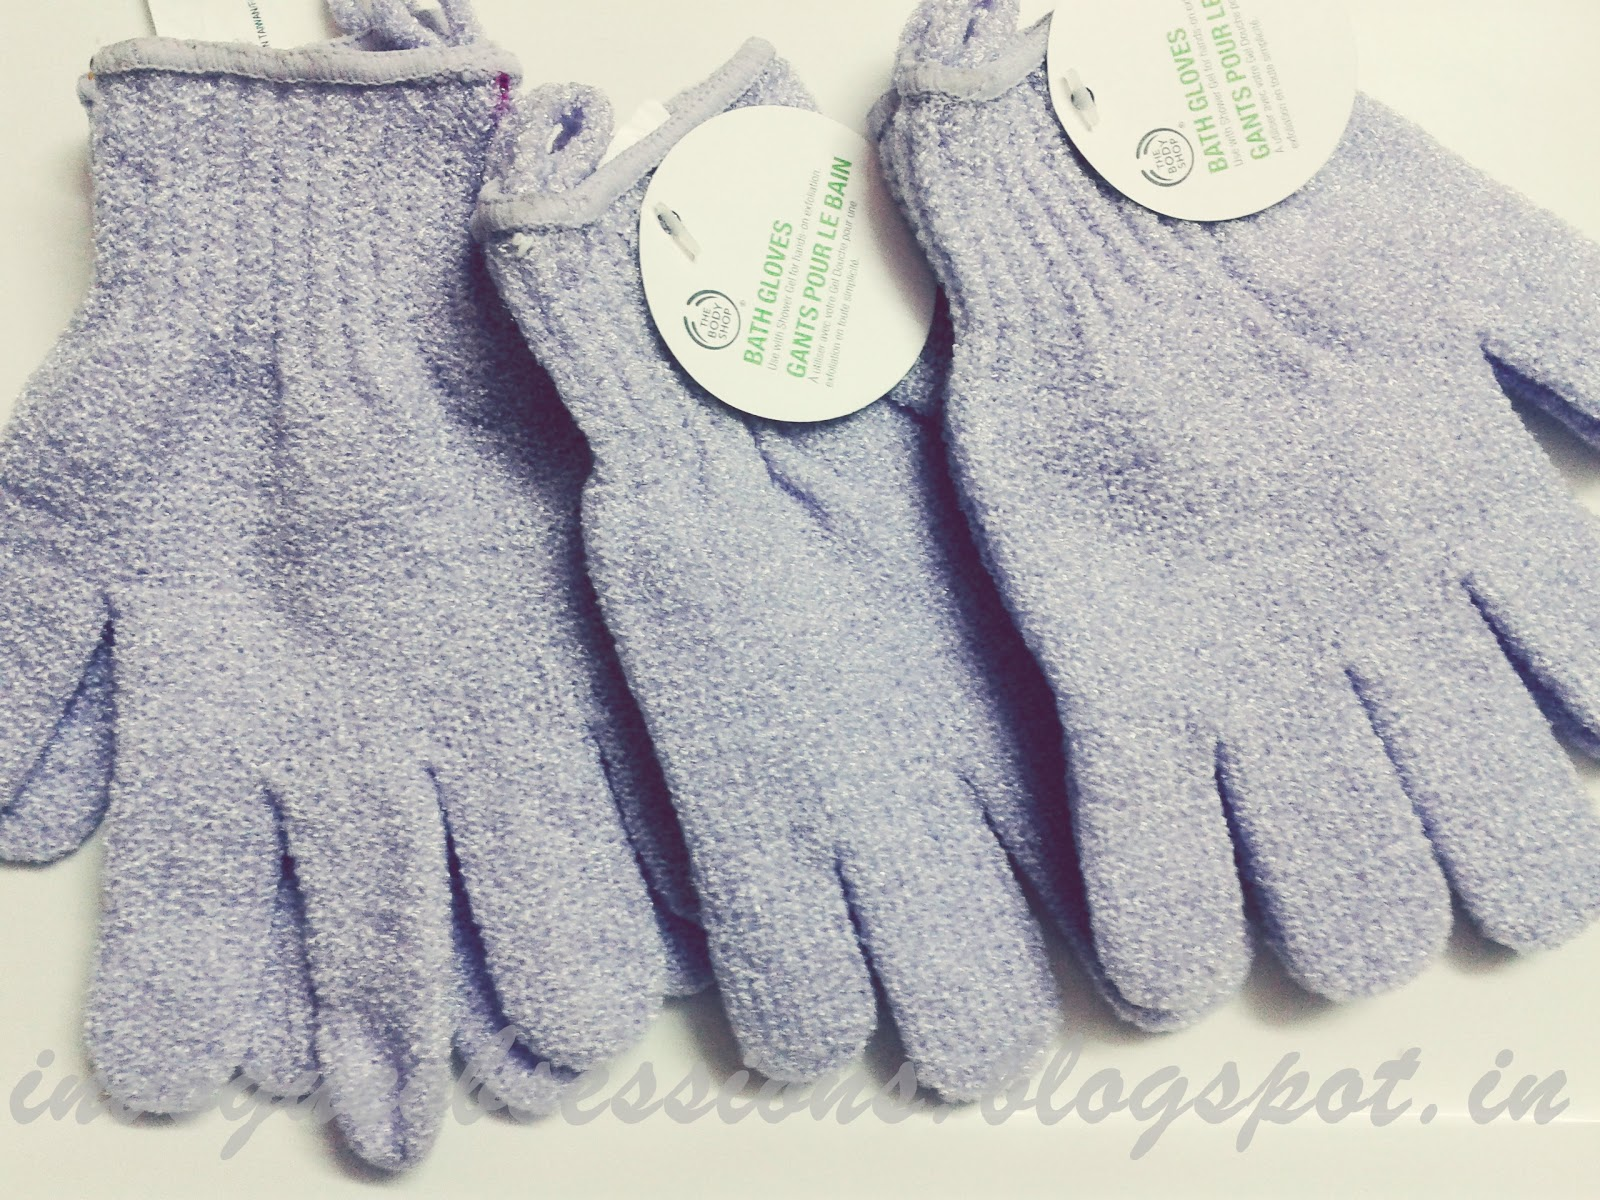 The Body Shop Bath Exfoliating Gloves Price in India